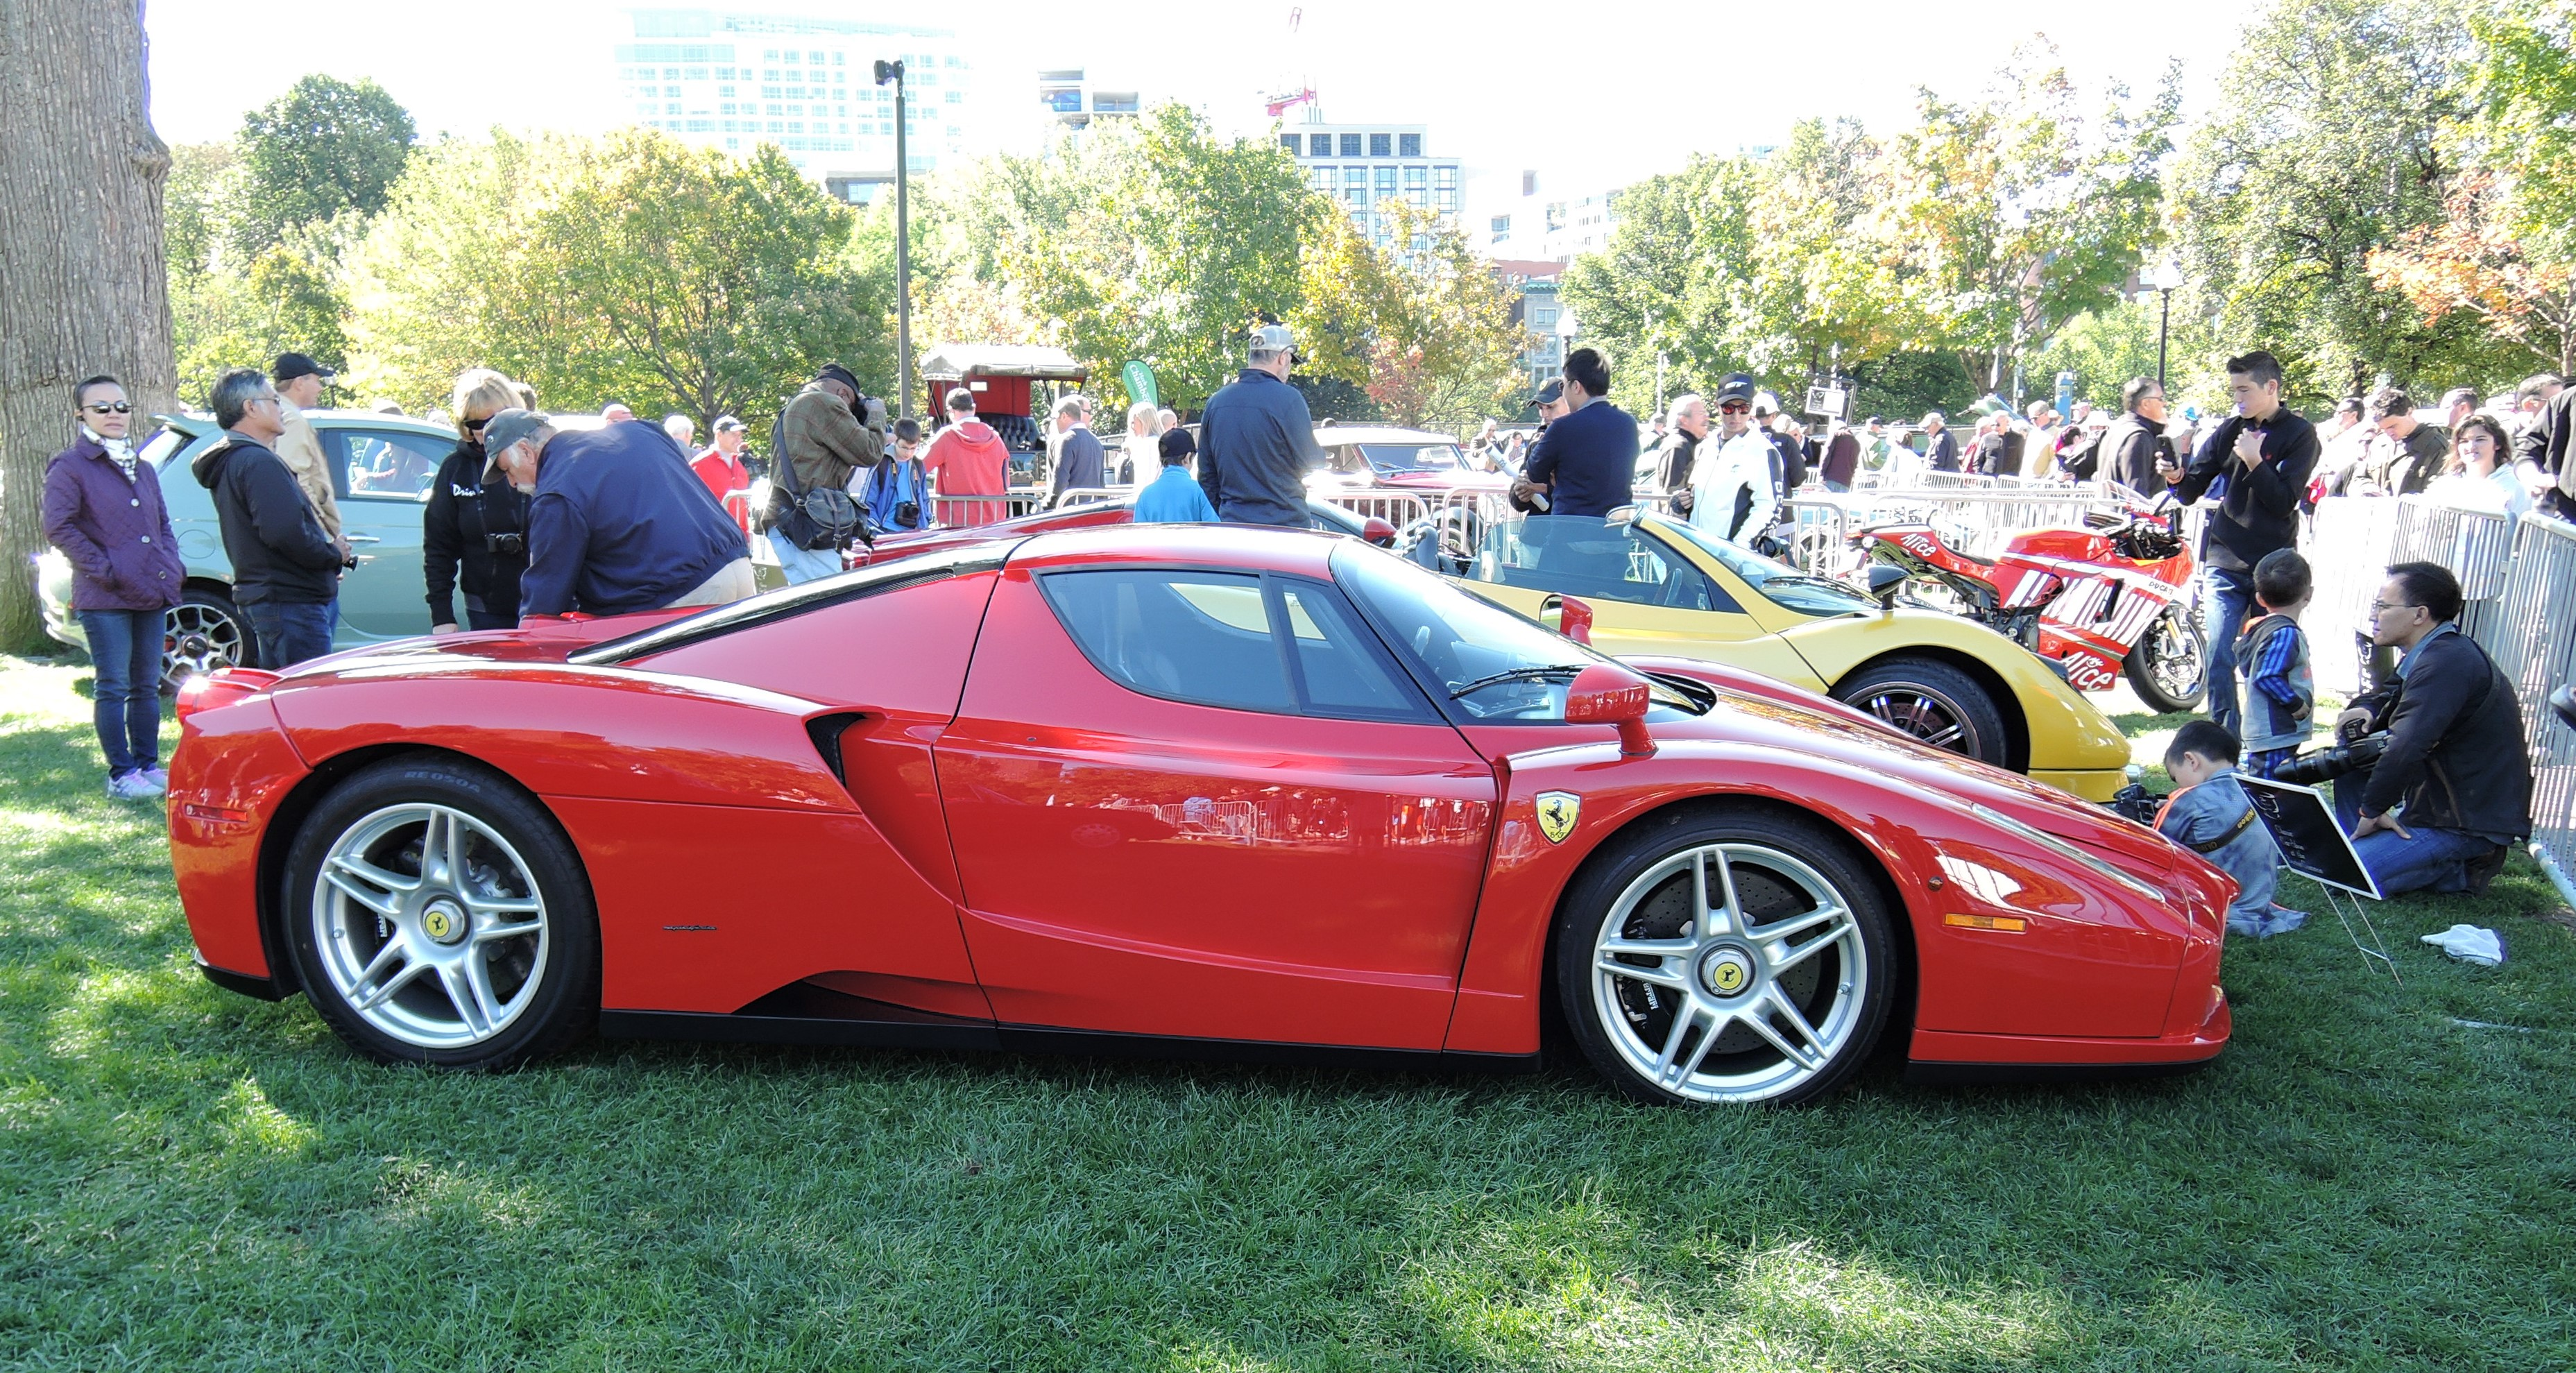 red 2003 Ferrari Enzo - The Boston Cup on Boston Common